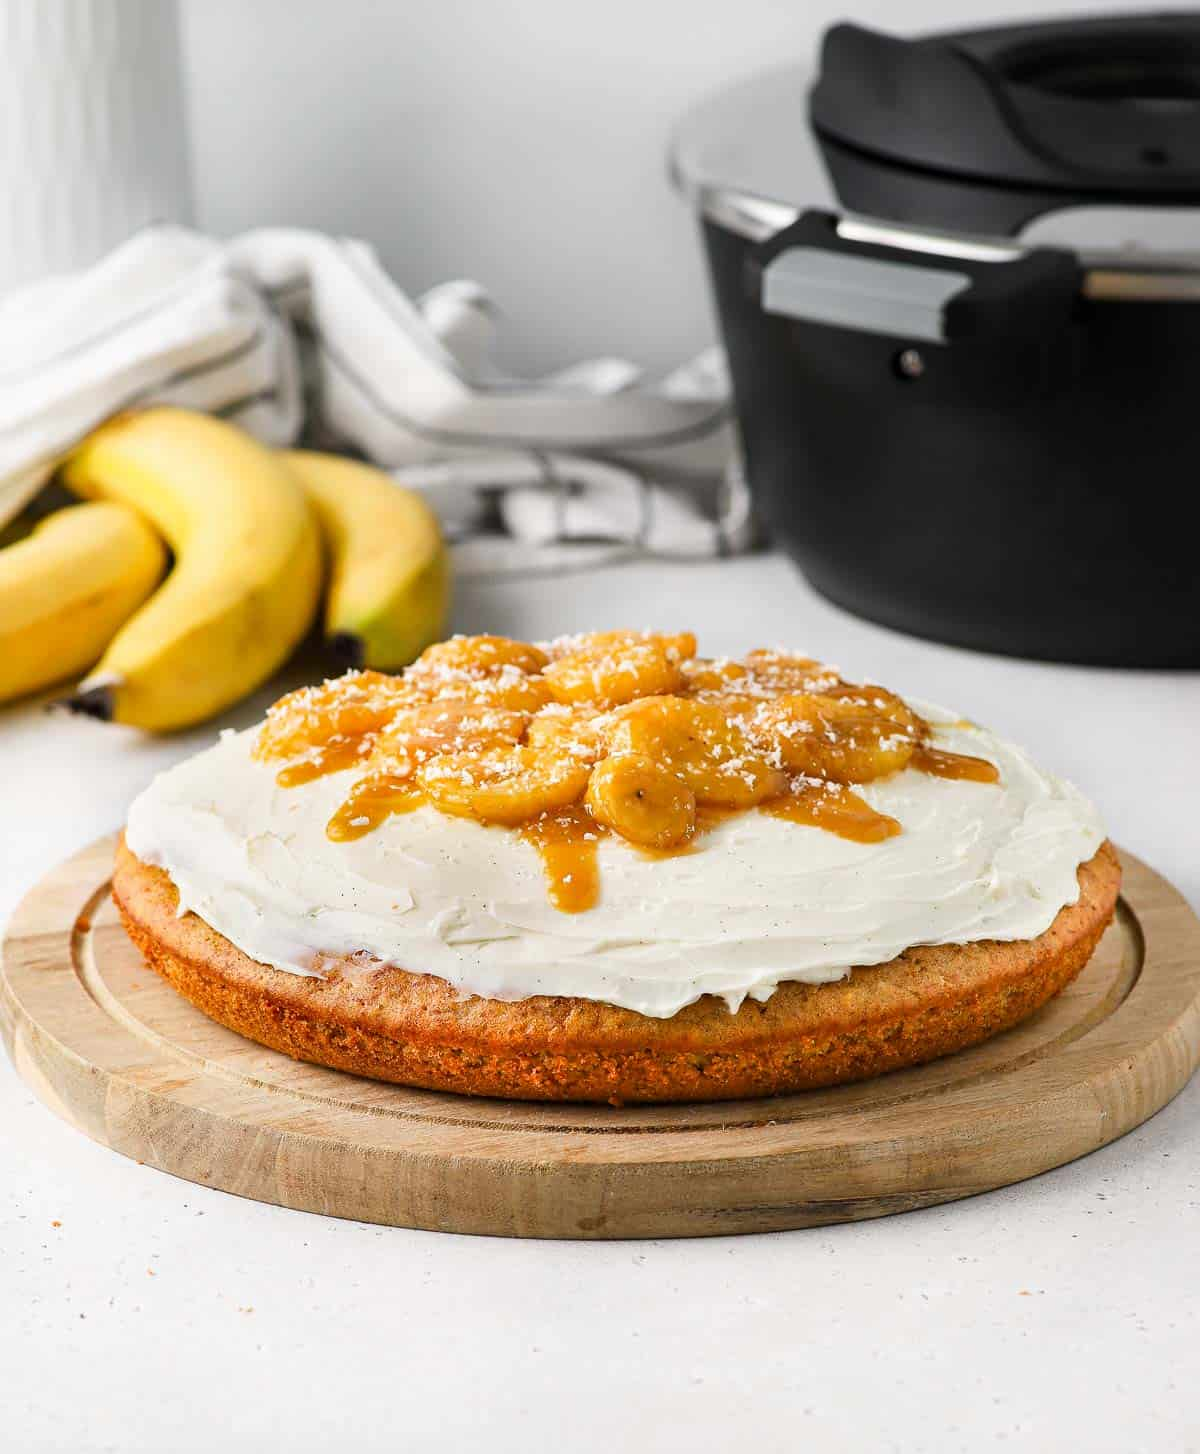 Banana Cake on a wooden board with the Remoska in the background.